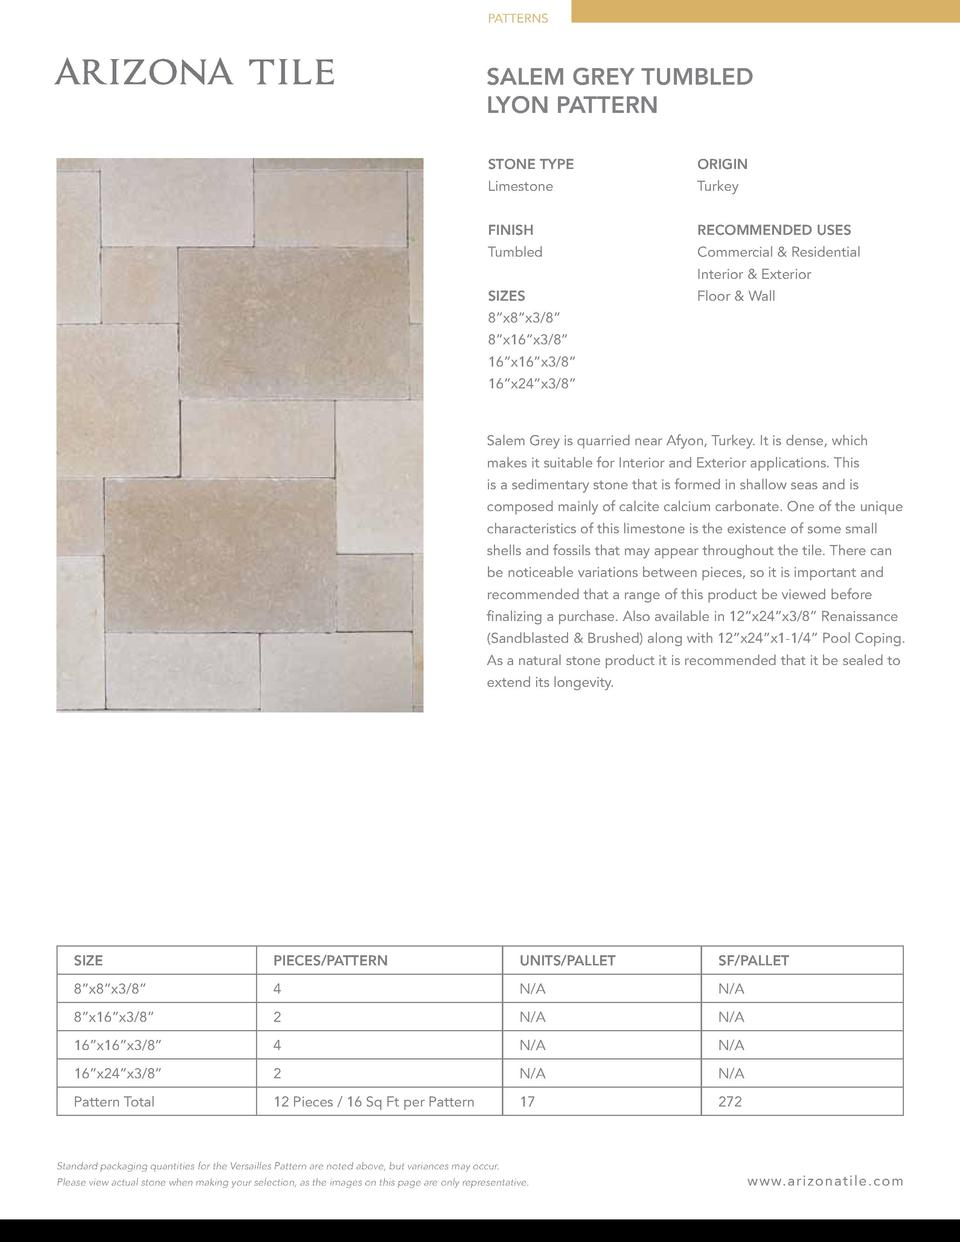 PATTERNS  SALEM GREY TUMBLED LYON PATTERN STONE TYPE  ORIGIN  Limestone  Turkey  FINISH  RECOMMENDED USES  Tumbled  Commer...